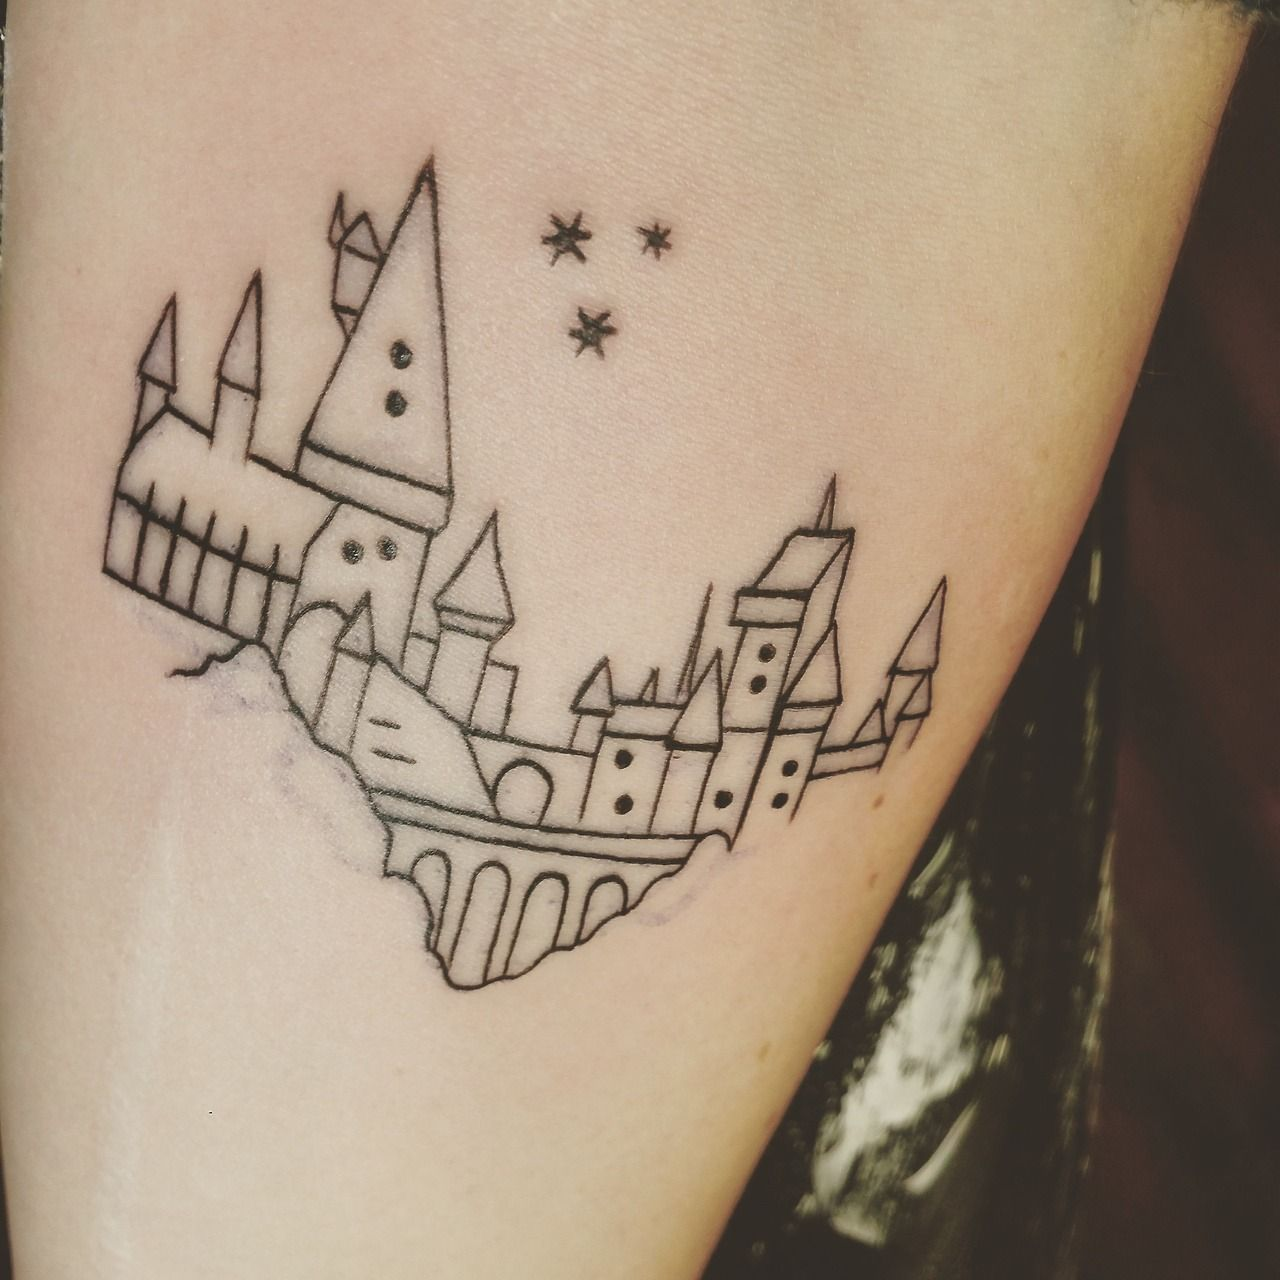 Ink Pedia Glad To Finally Welcome Tattoo 3 An Outline Of Hogwarts Castle Done By Aaron At Ohana Tattoo Parlor Hogwarts Tattoo Bookish Tattoos Ohana Tattoo